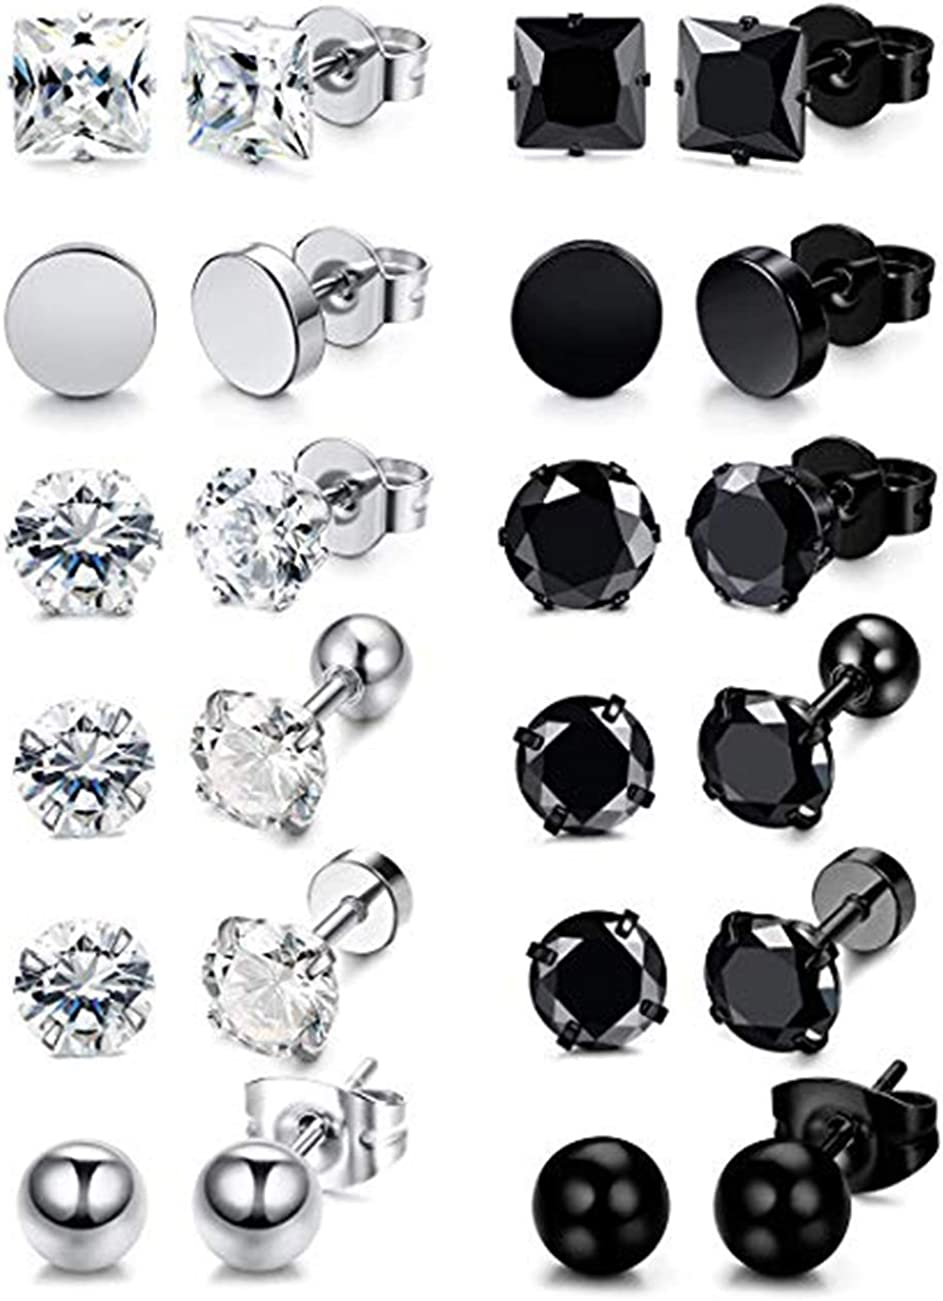 Vcmart 36pieces Black Ear Taper Stretching Kit Surgical Steel Tapers with Plugs Piercing Jewelry Gauges 14G-00G